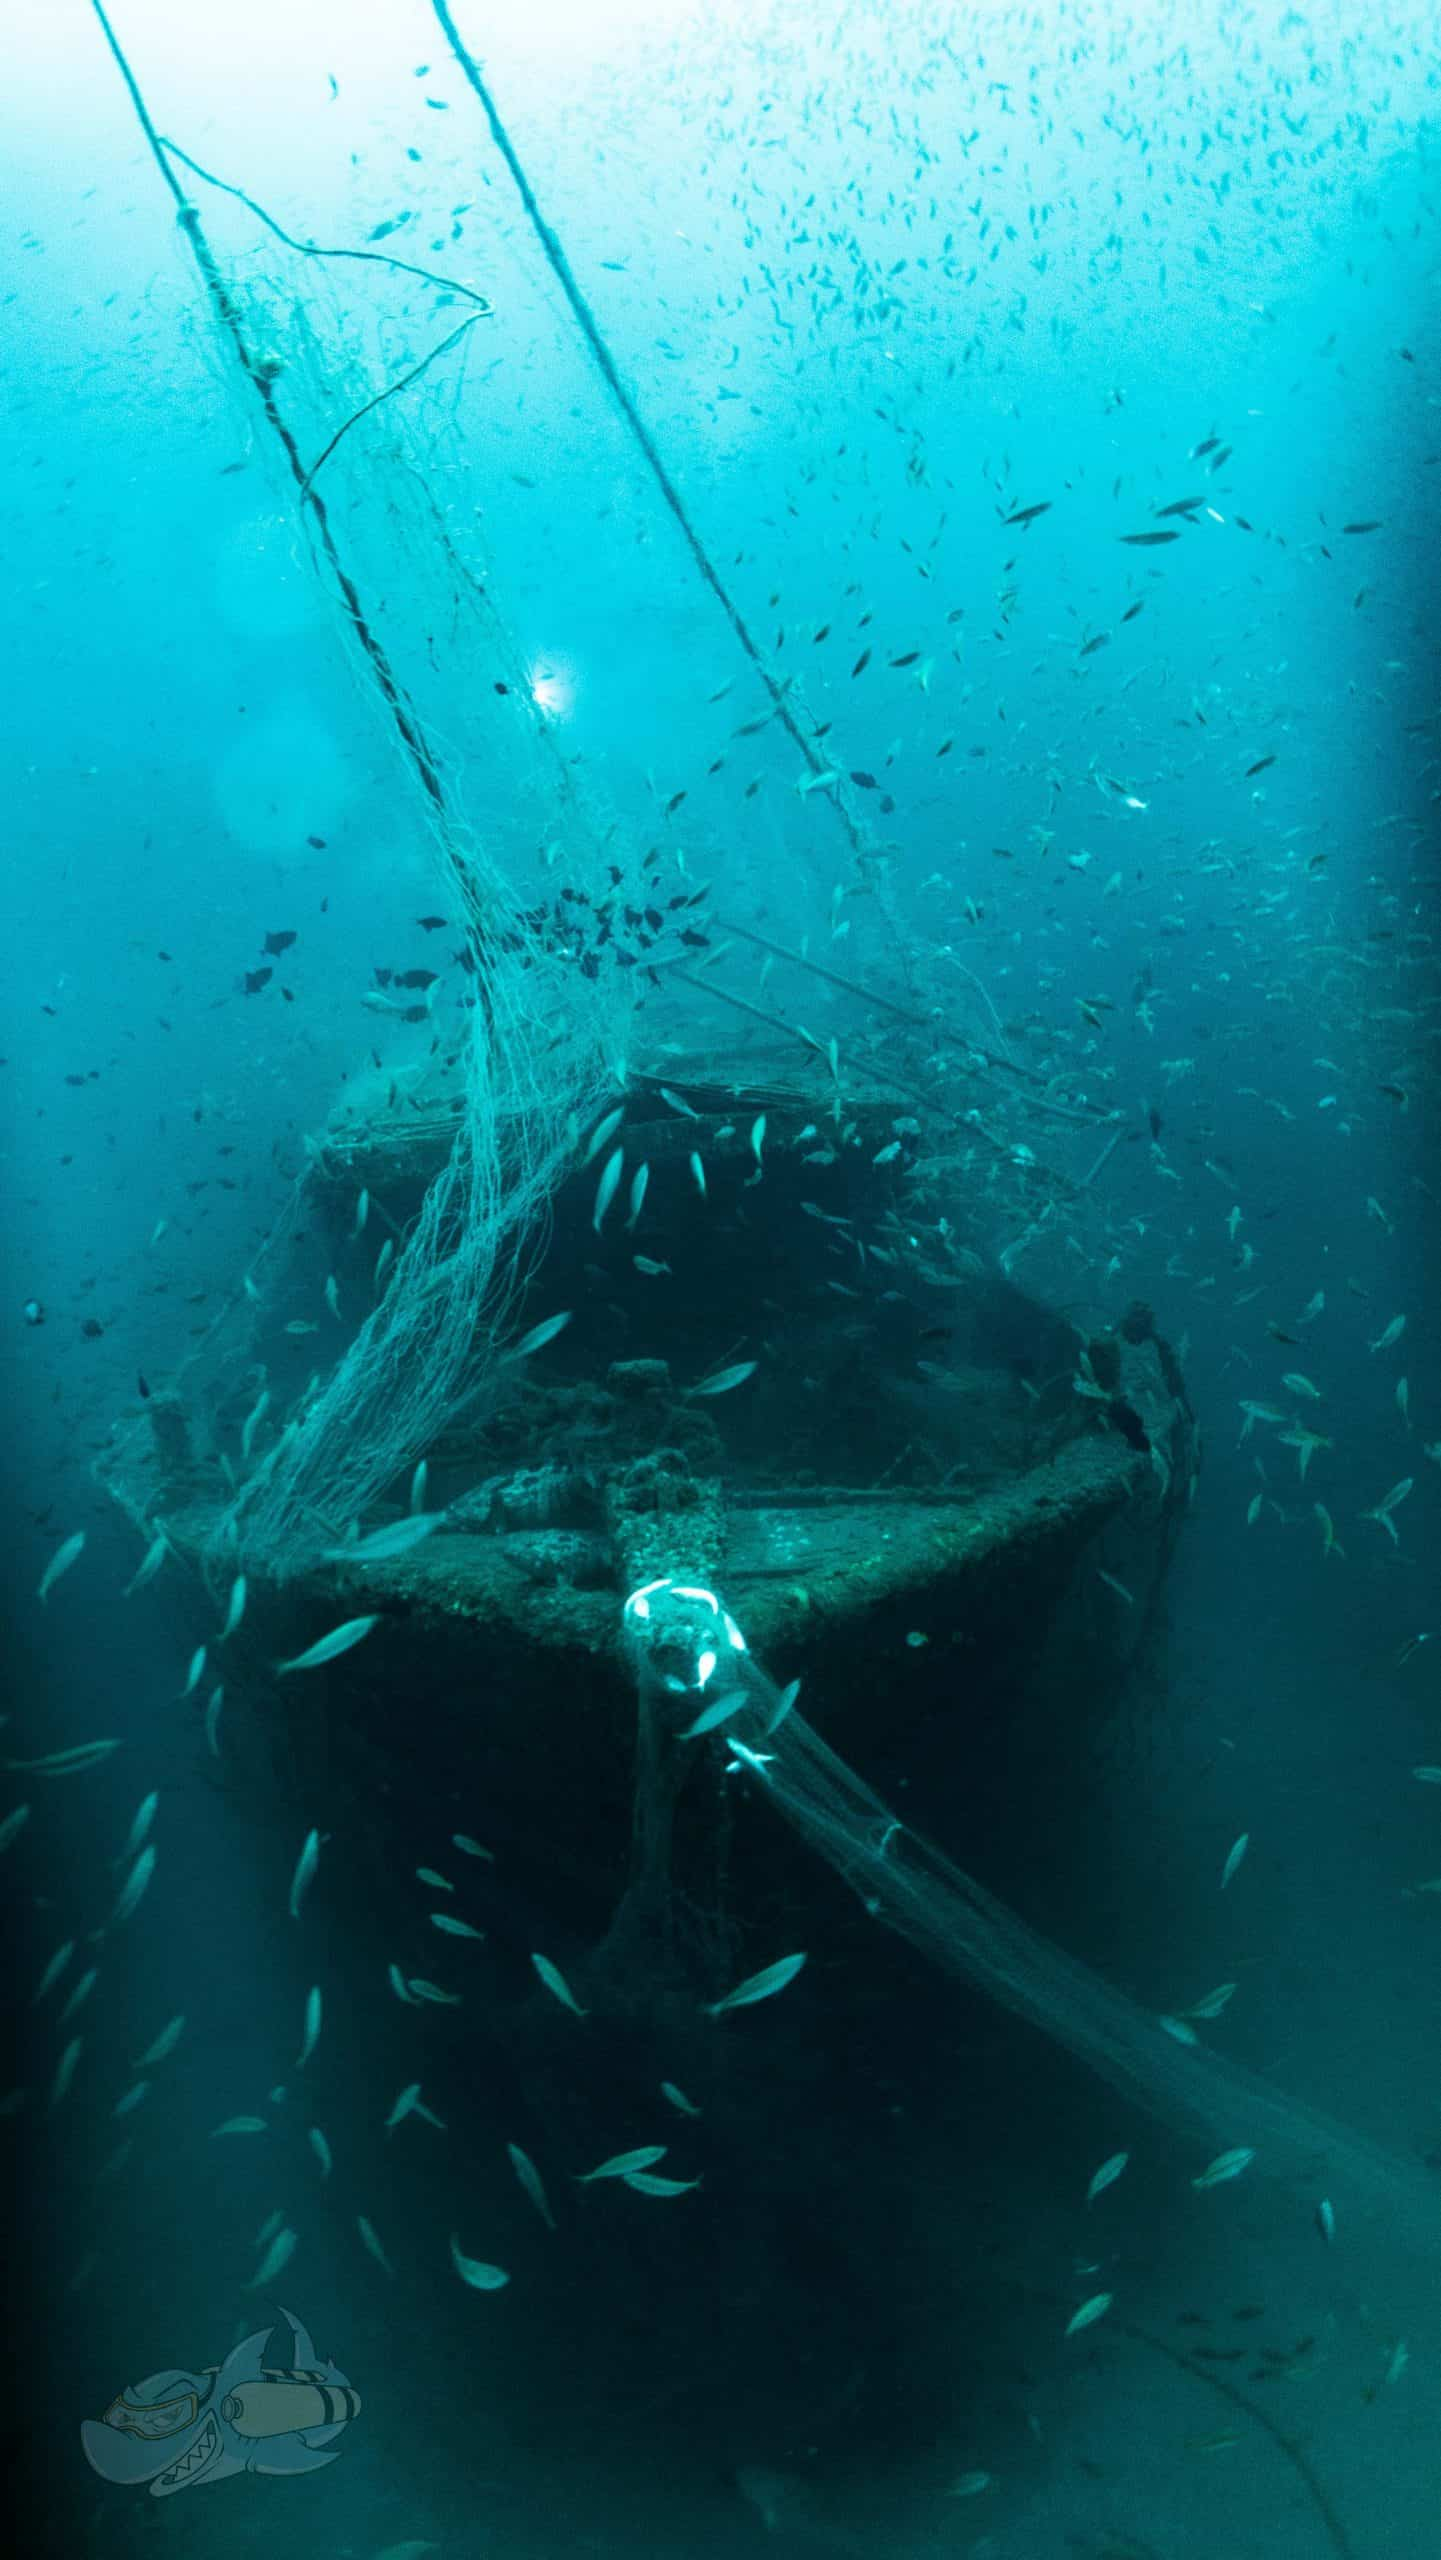 Front view of the Trawler wreck